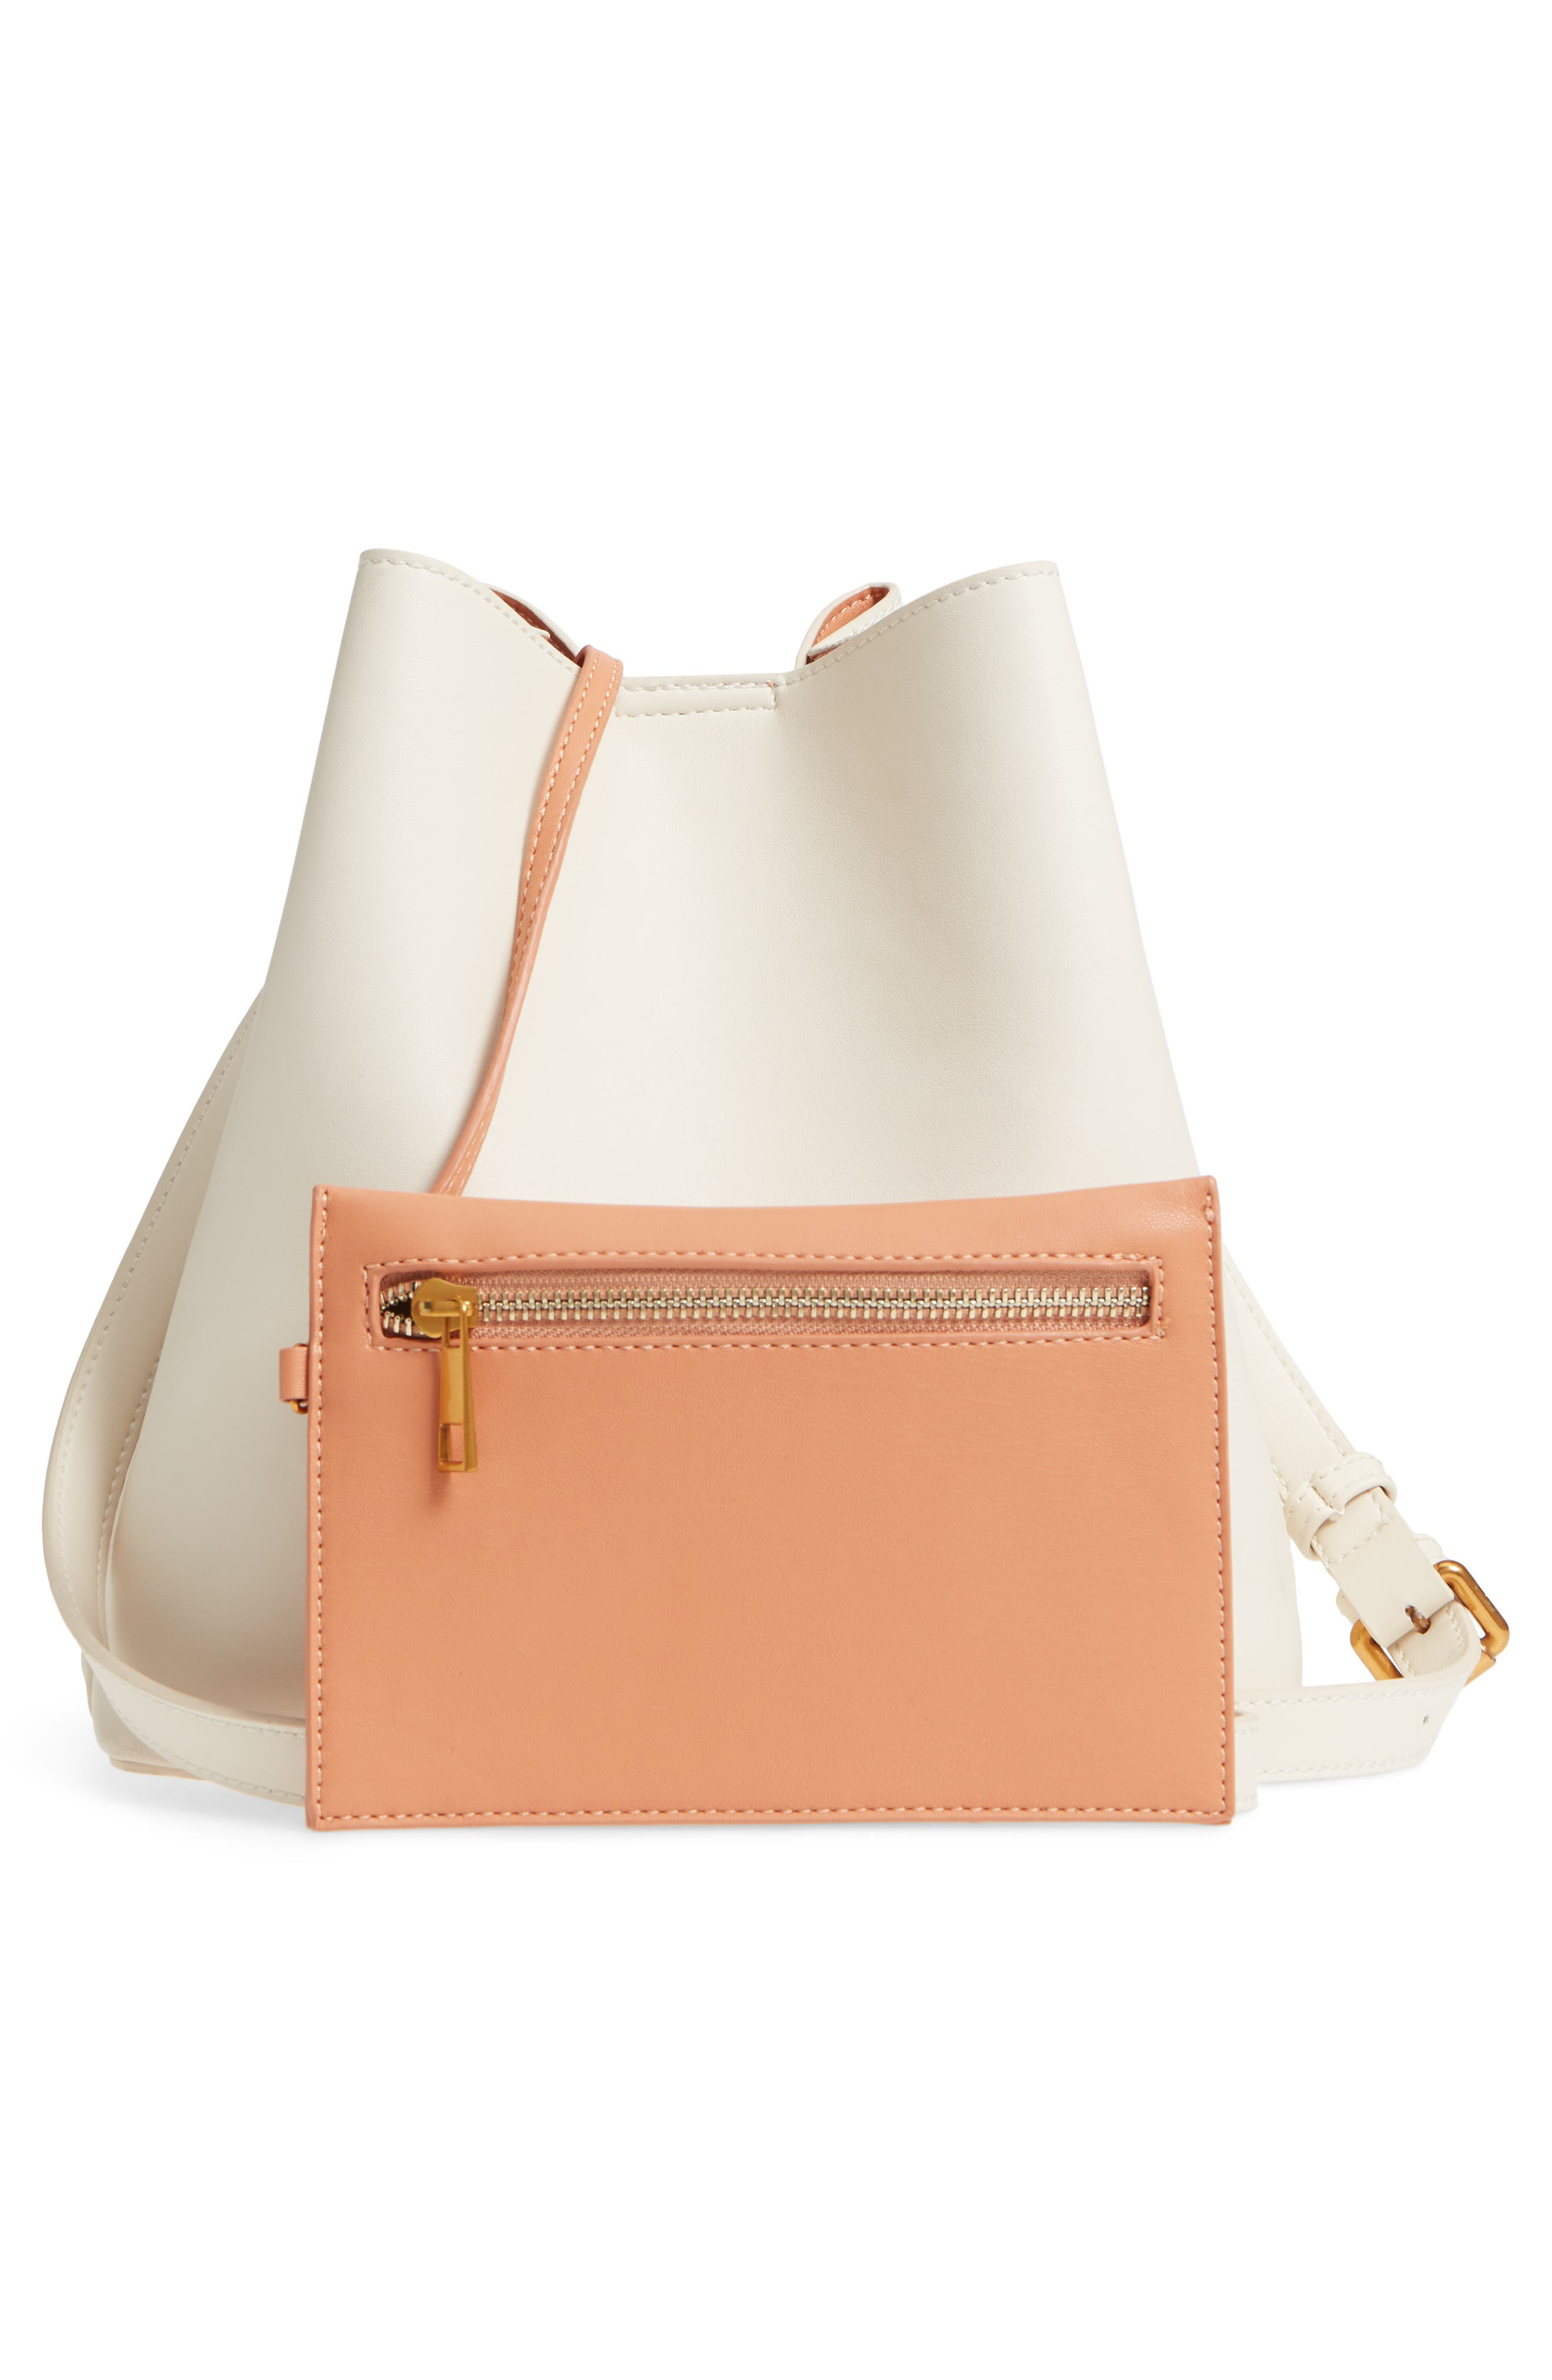 STREET LEVEL,                             Faux Leather Bucket Tote,                             Alternate thumbnail 3, color,                             100